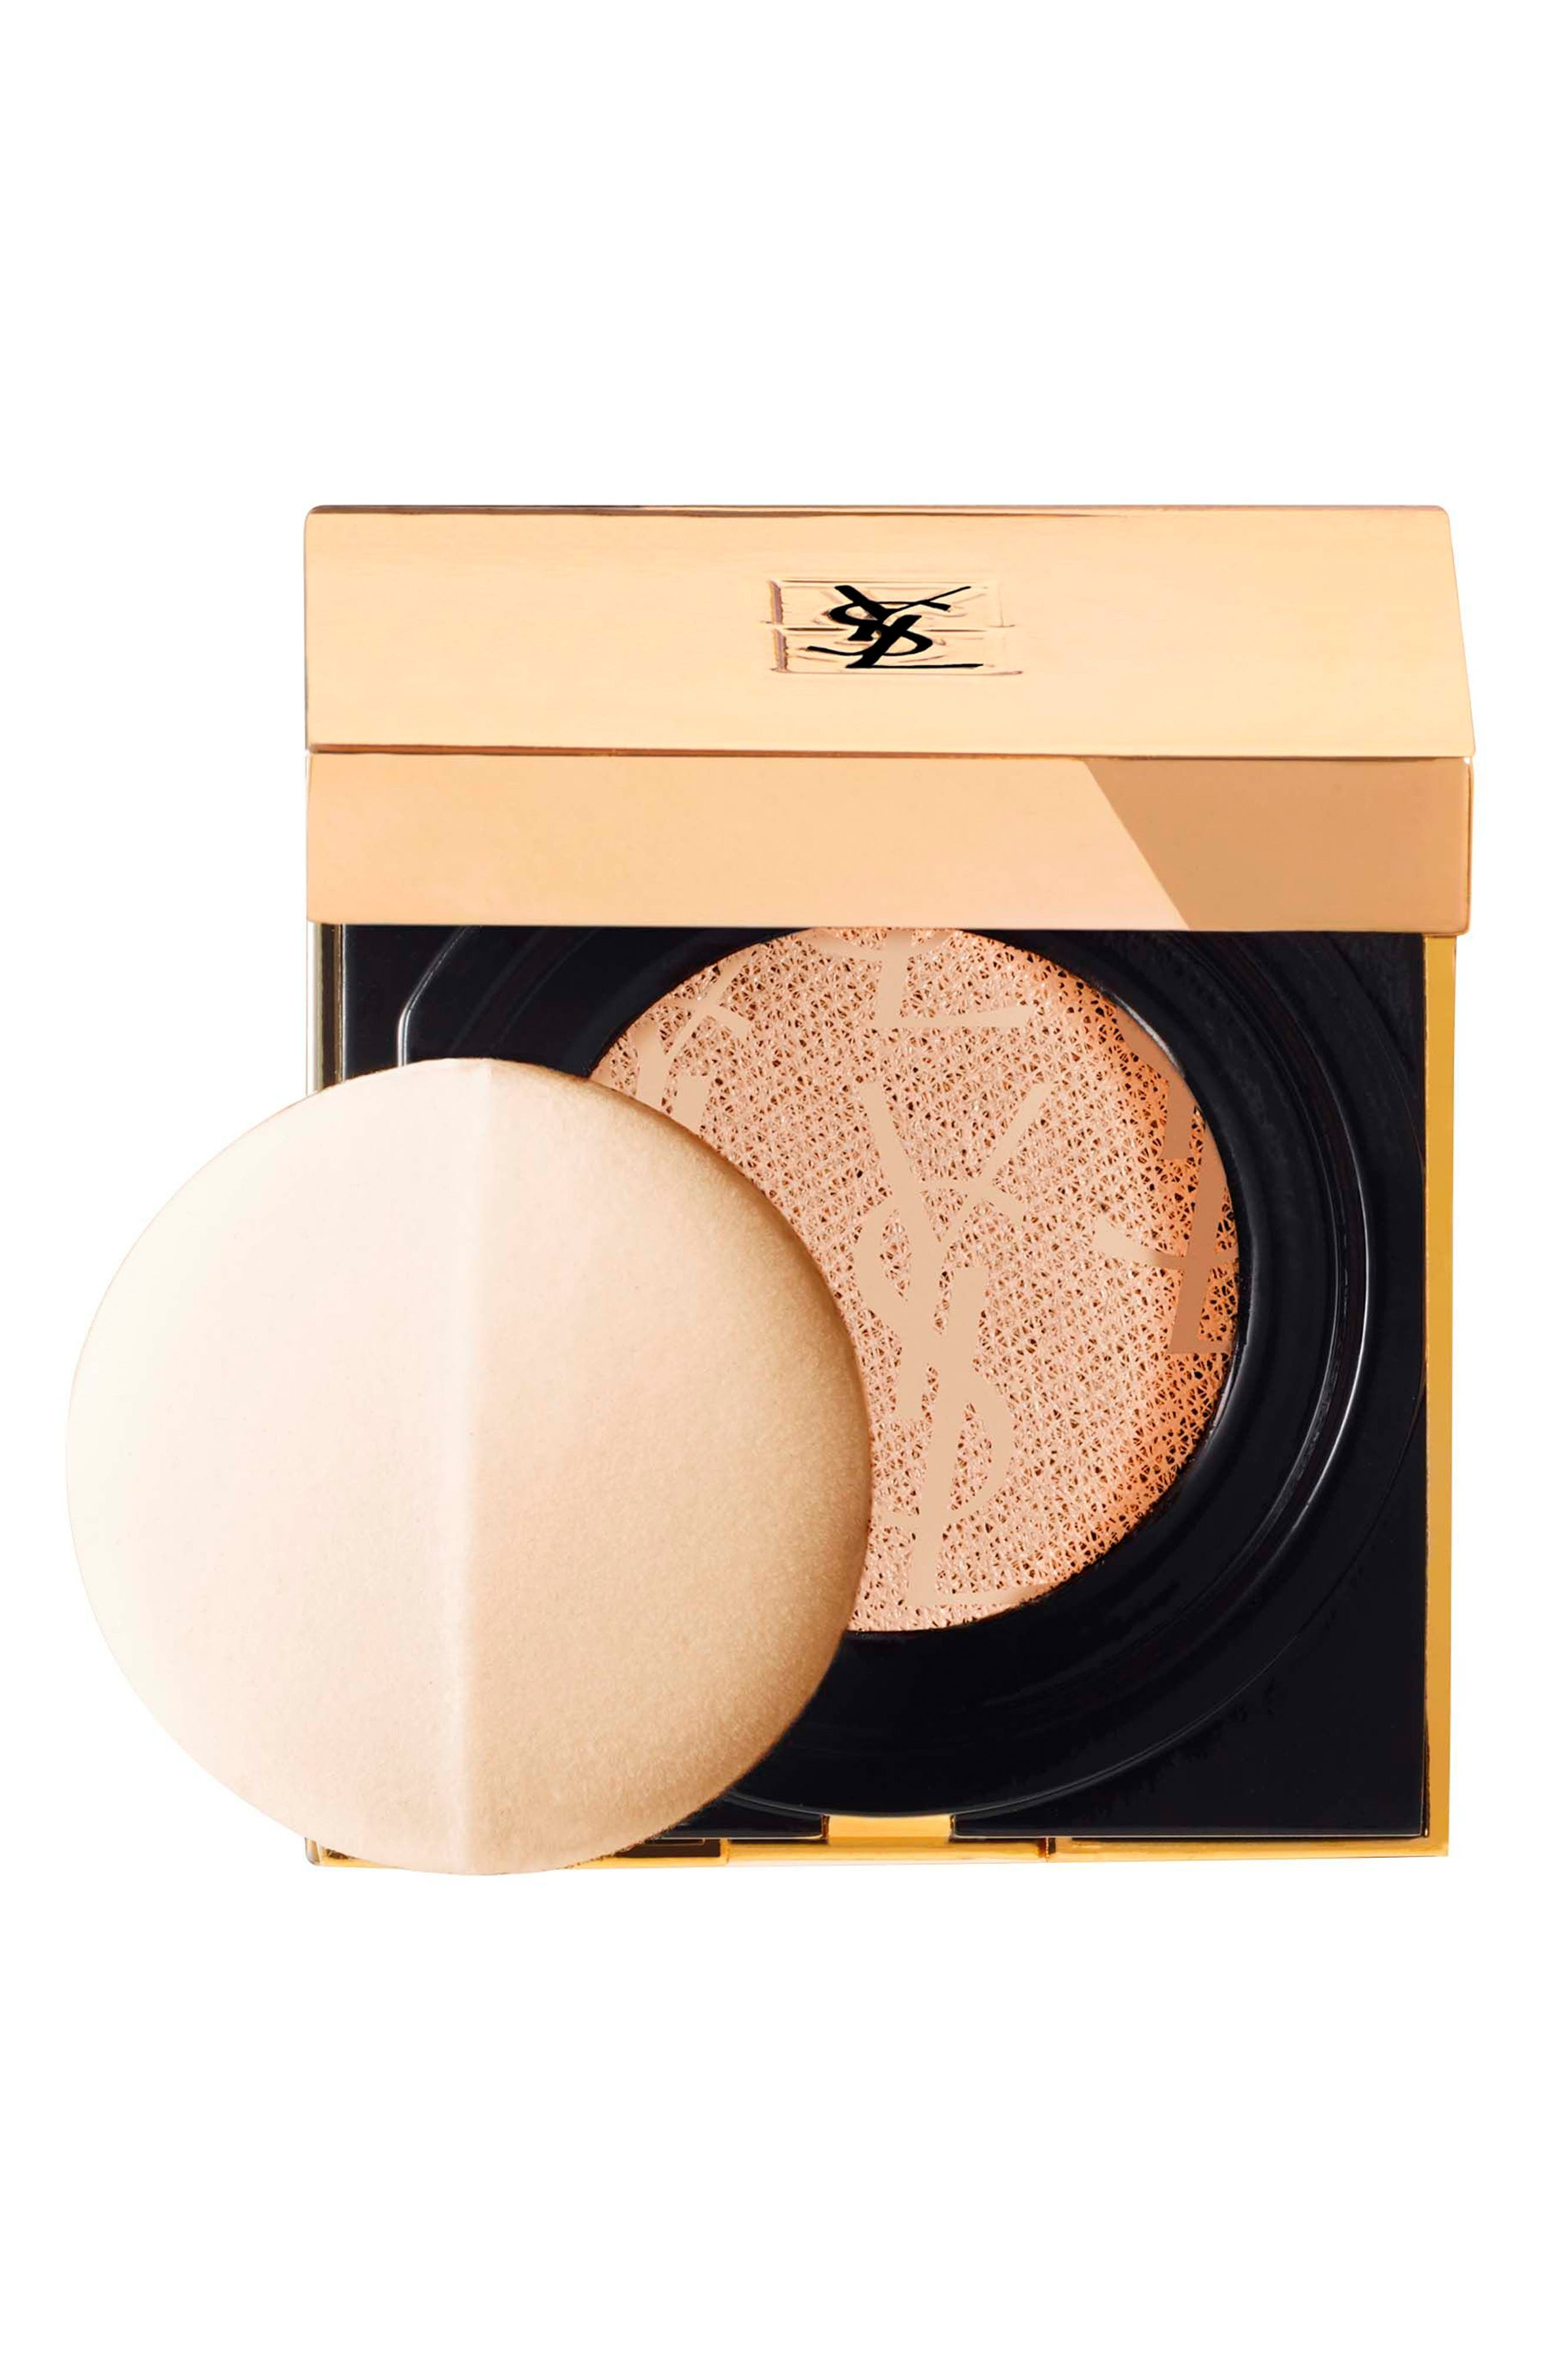 Yves Saint Laurent Touche Éclat Cushion Compact Foundation (Nordstrom Exclusive)